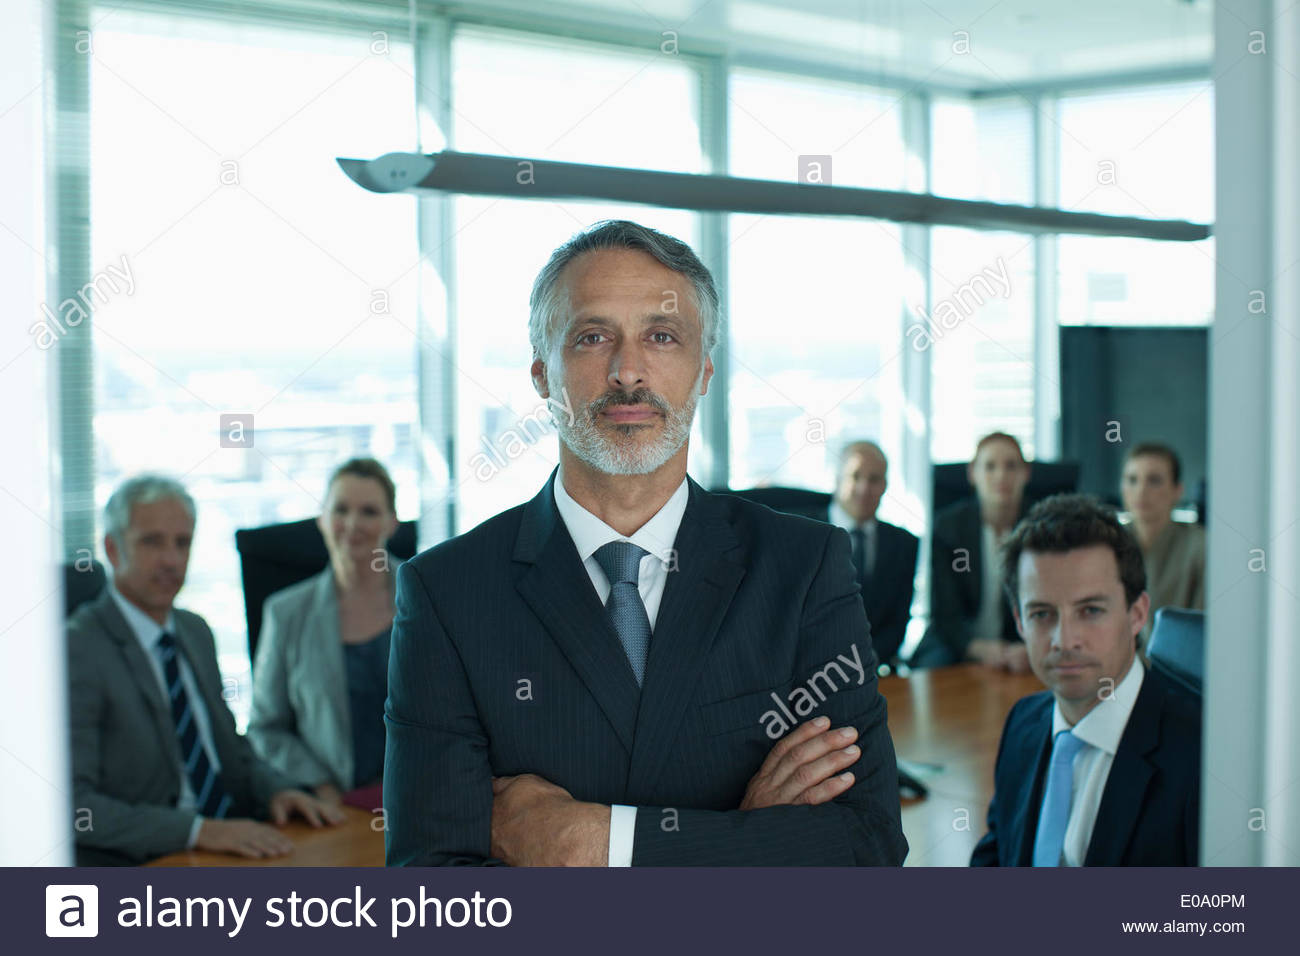 Portrait of businessman and co-workers in conference room - Stock Image